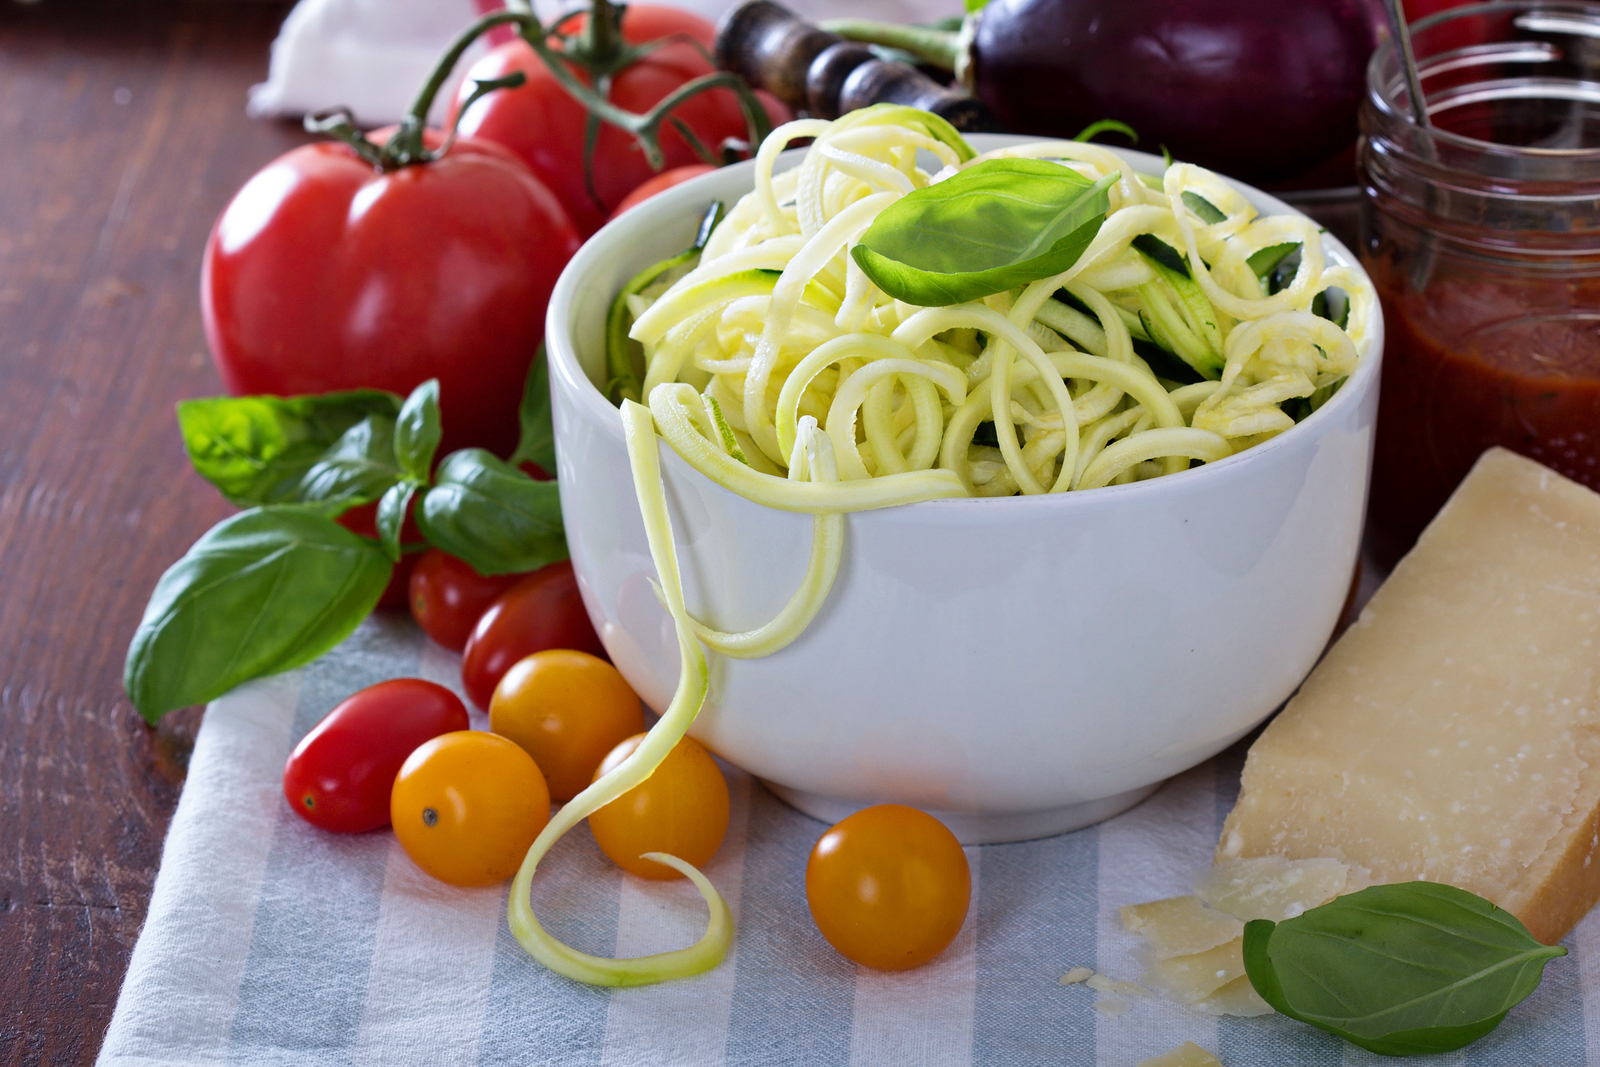 Zucchini noodles in a bowl with fresh vegetables and cheese ** Note: Shallow depth of field